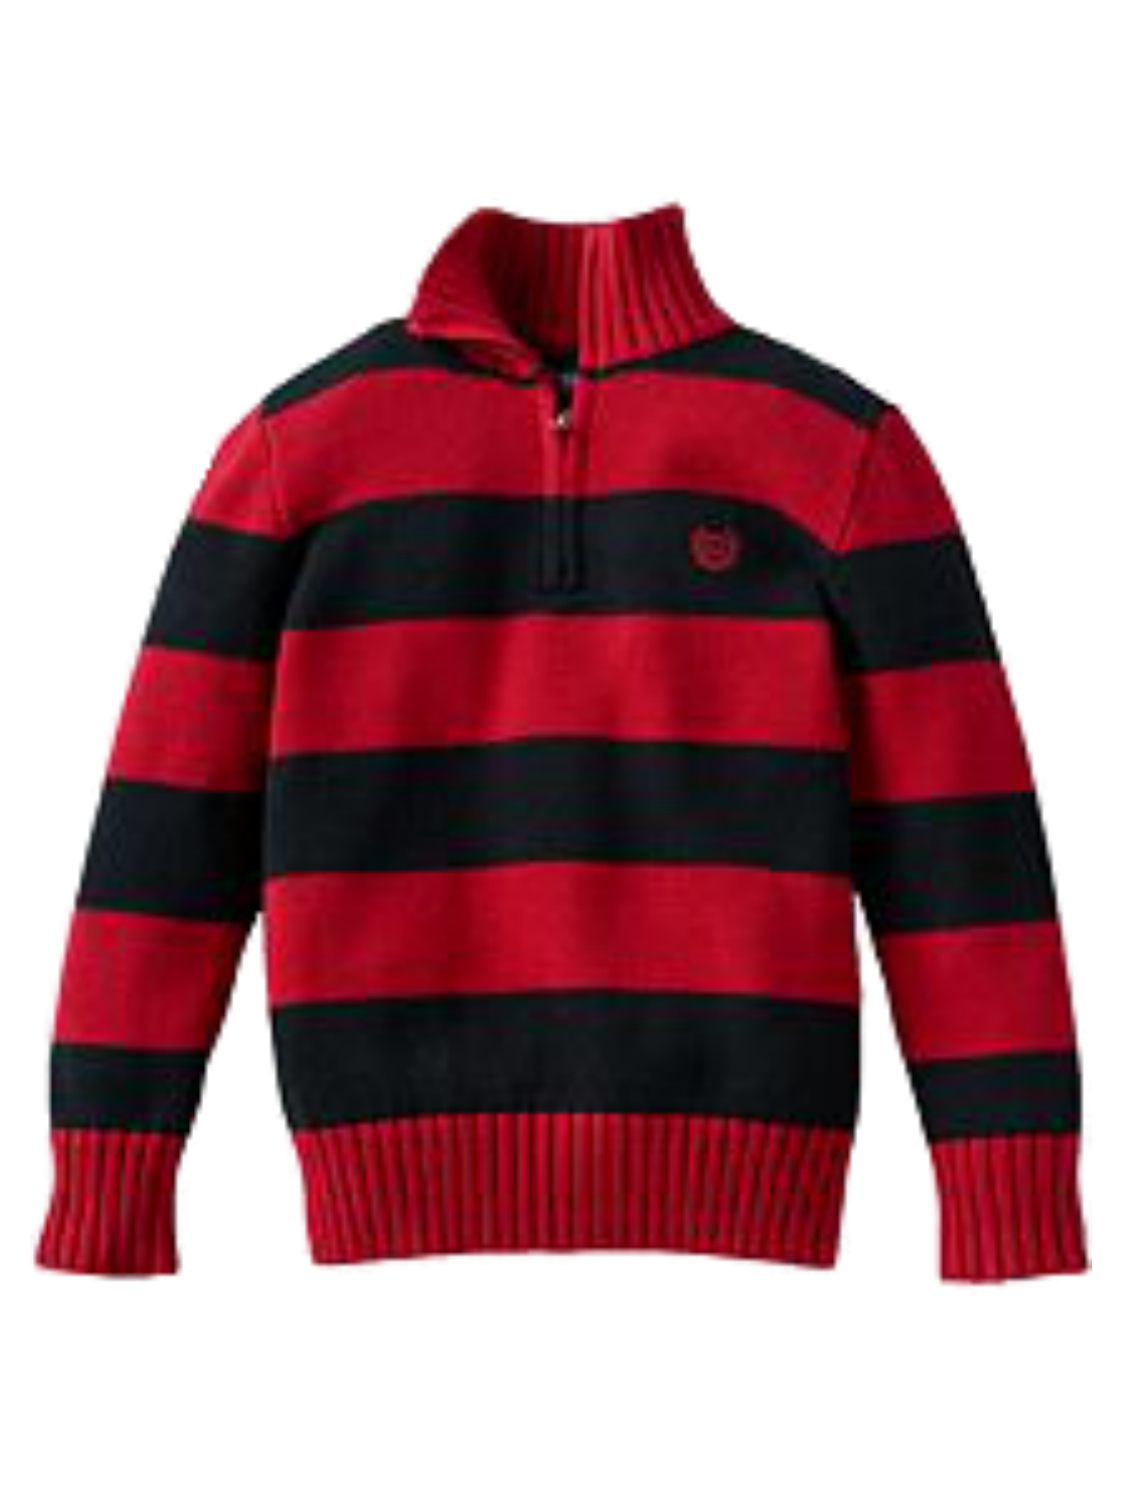 Chaps Toddler Little Boys Red Black Striped Zip Front Henley Knit Sweater